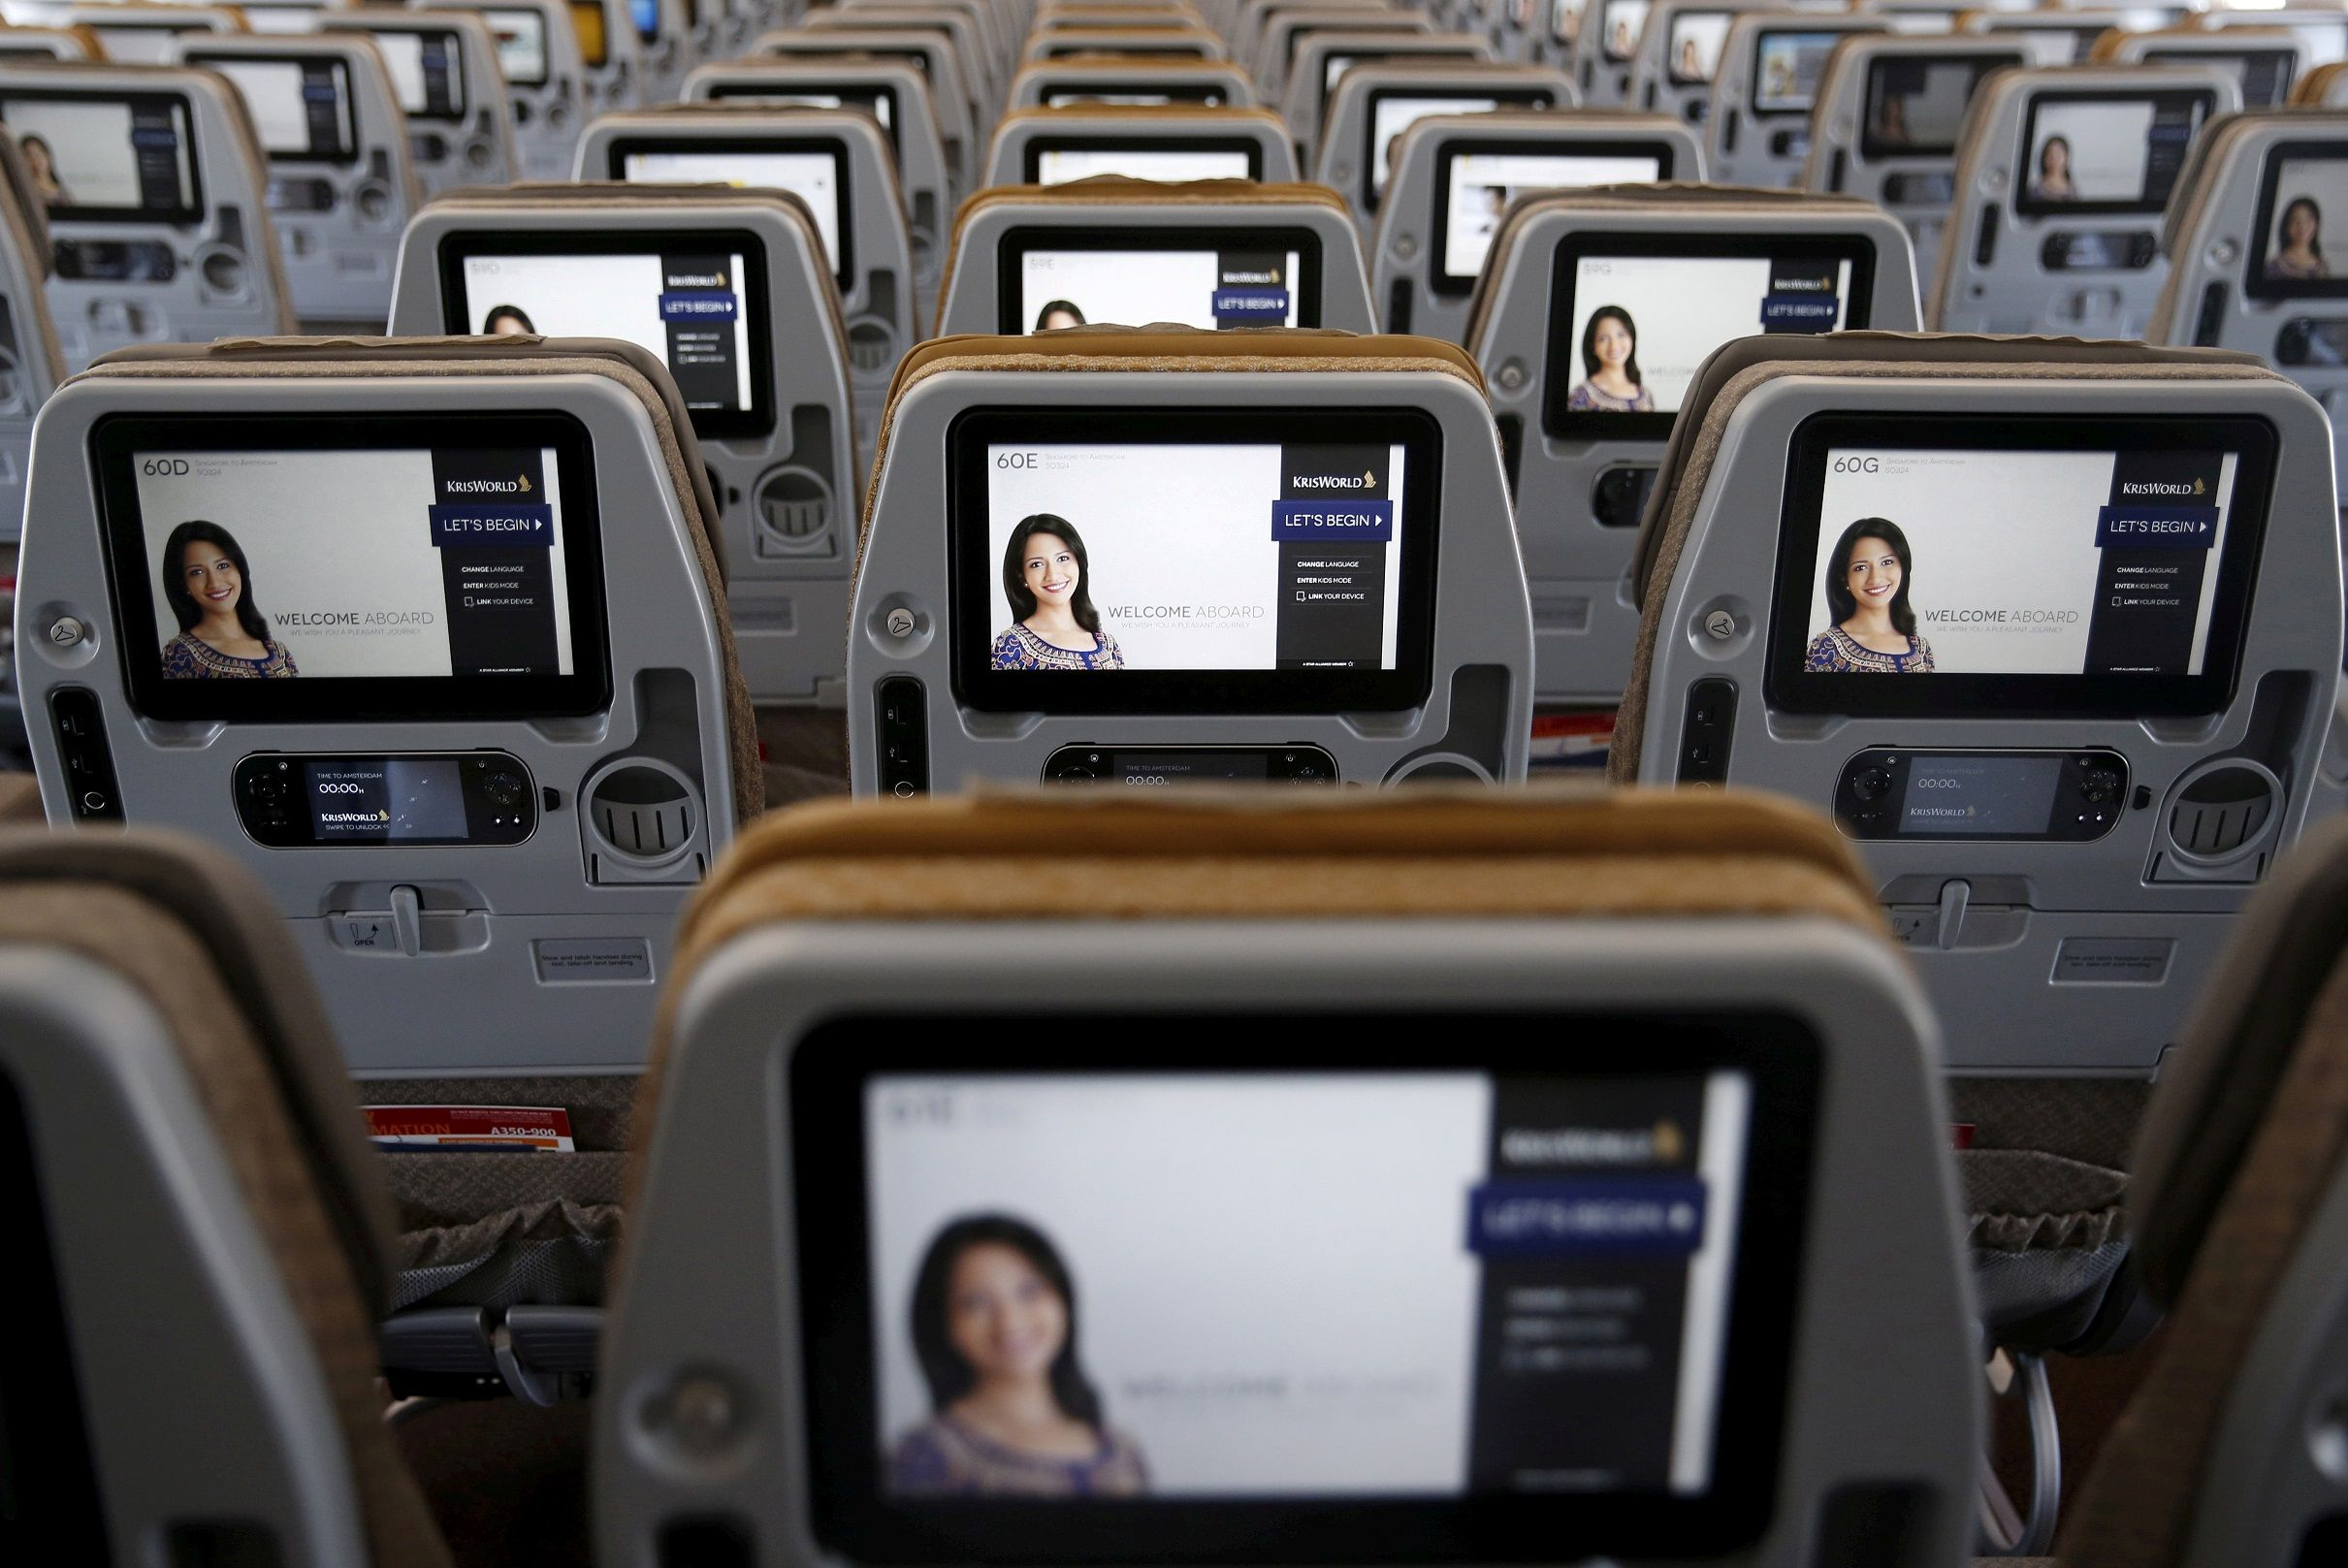 plane hack inflight entertainment system